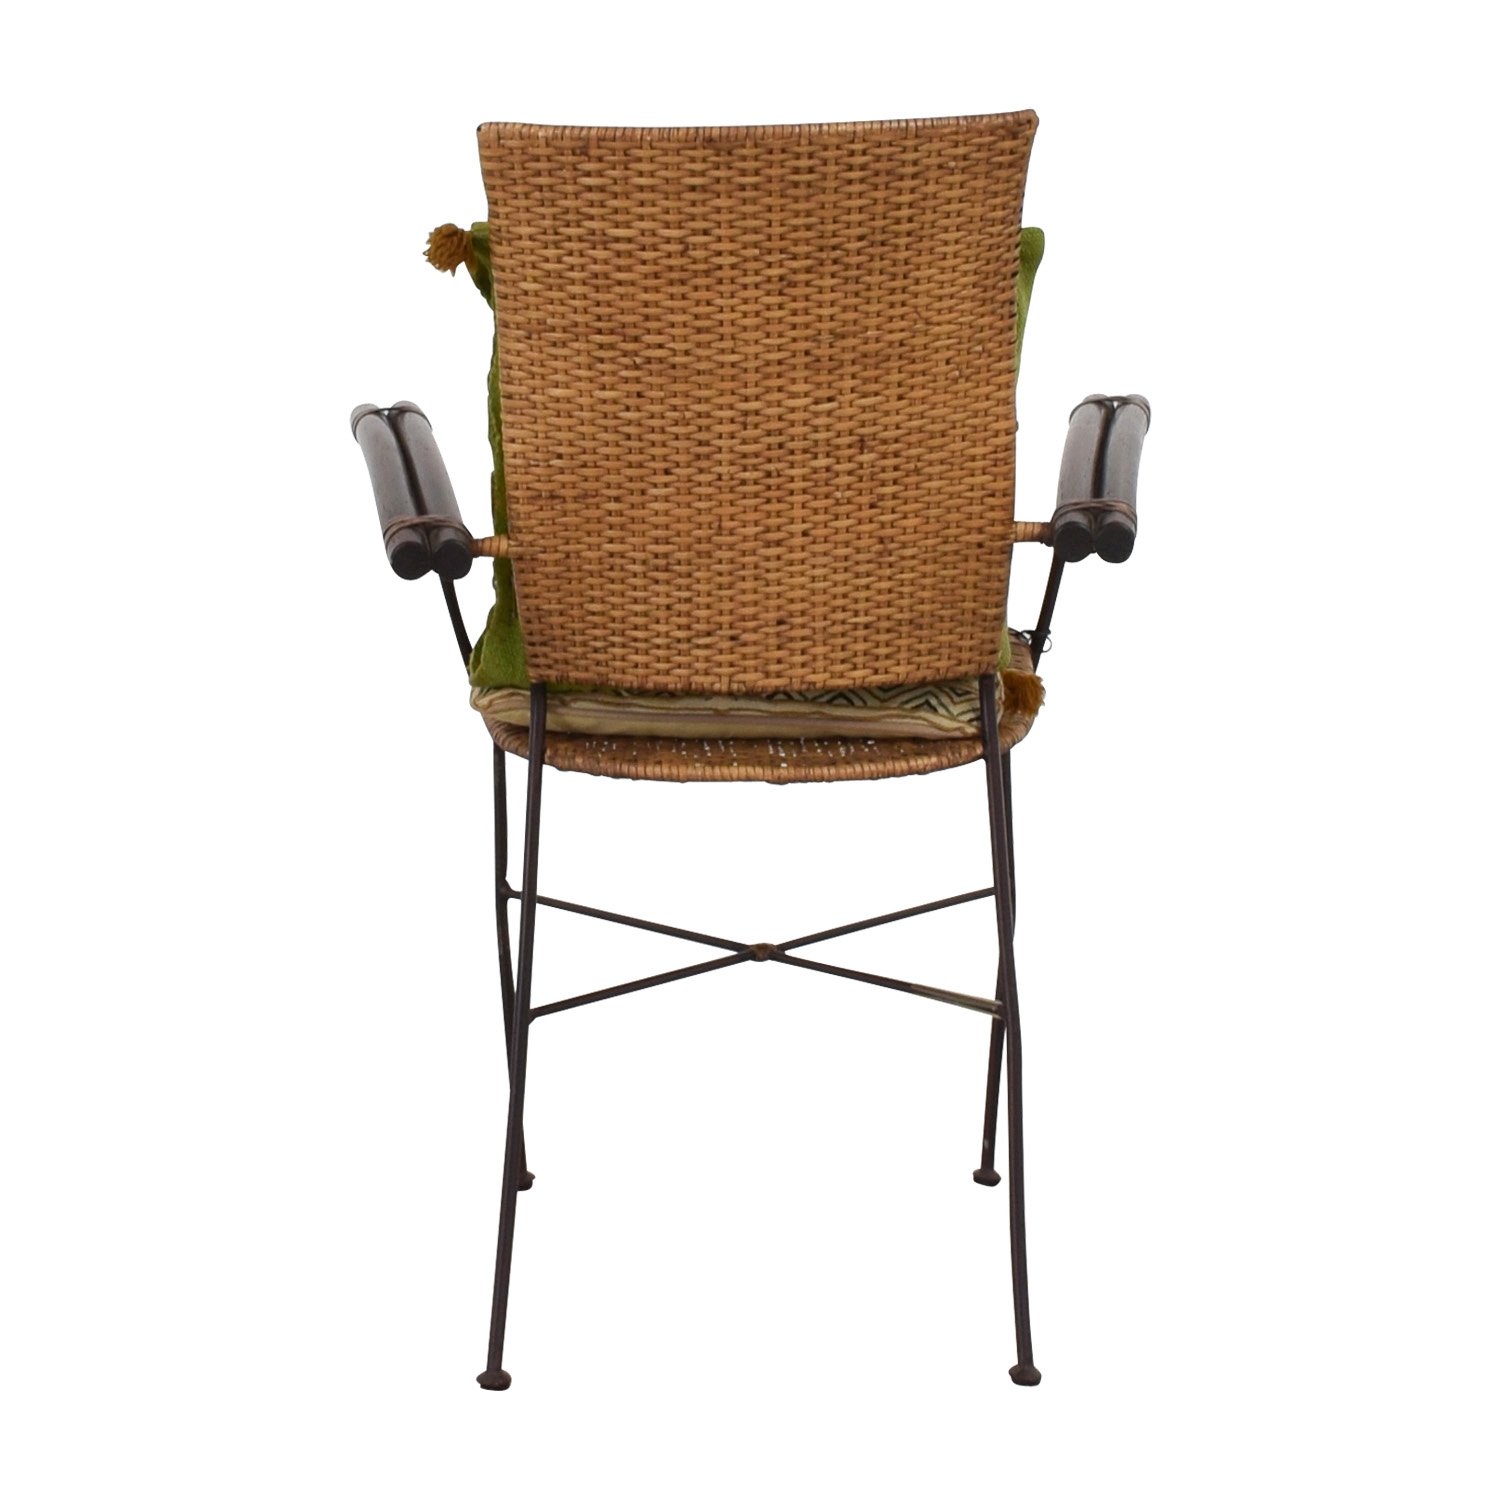 Wicker Chair with Bamboo Arms used